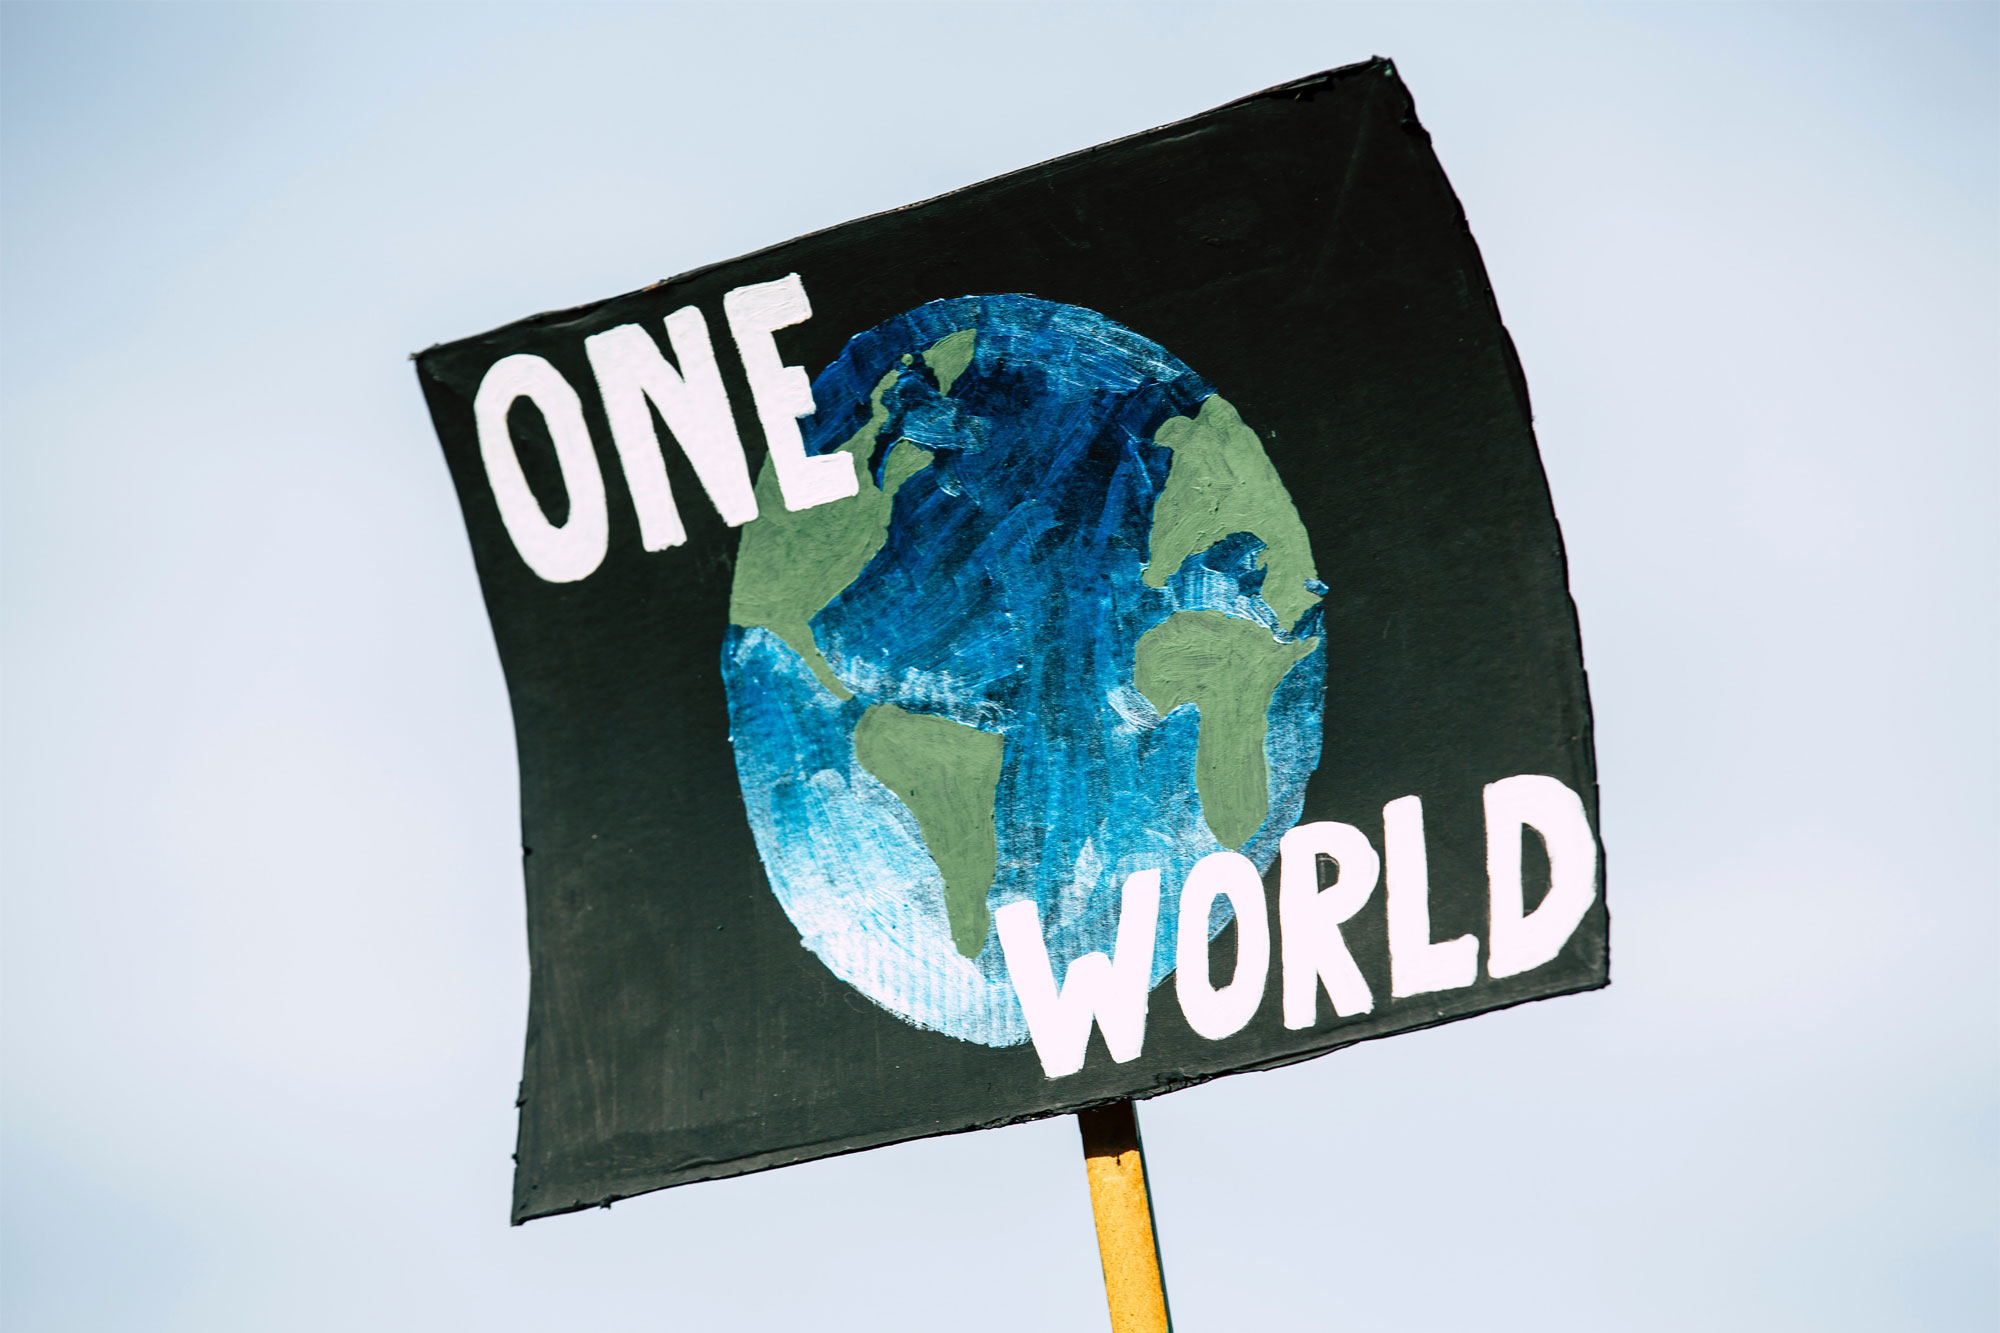 Placard held aloft: 'One World'